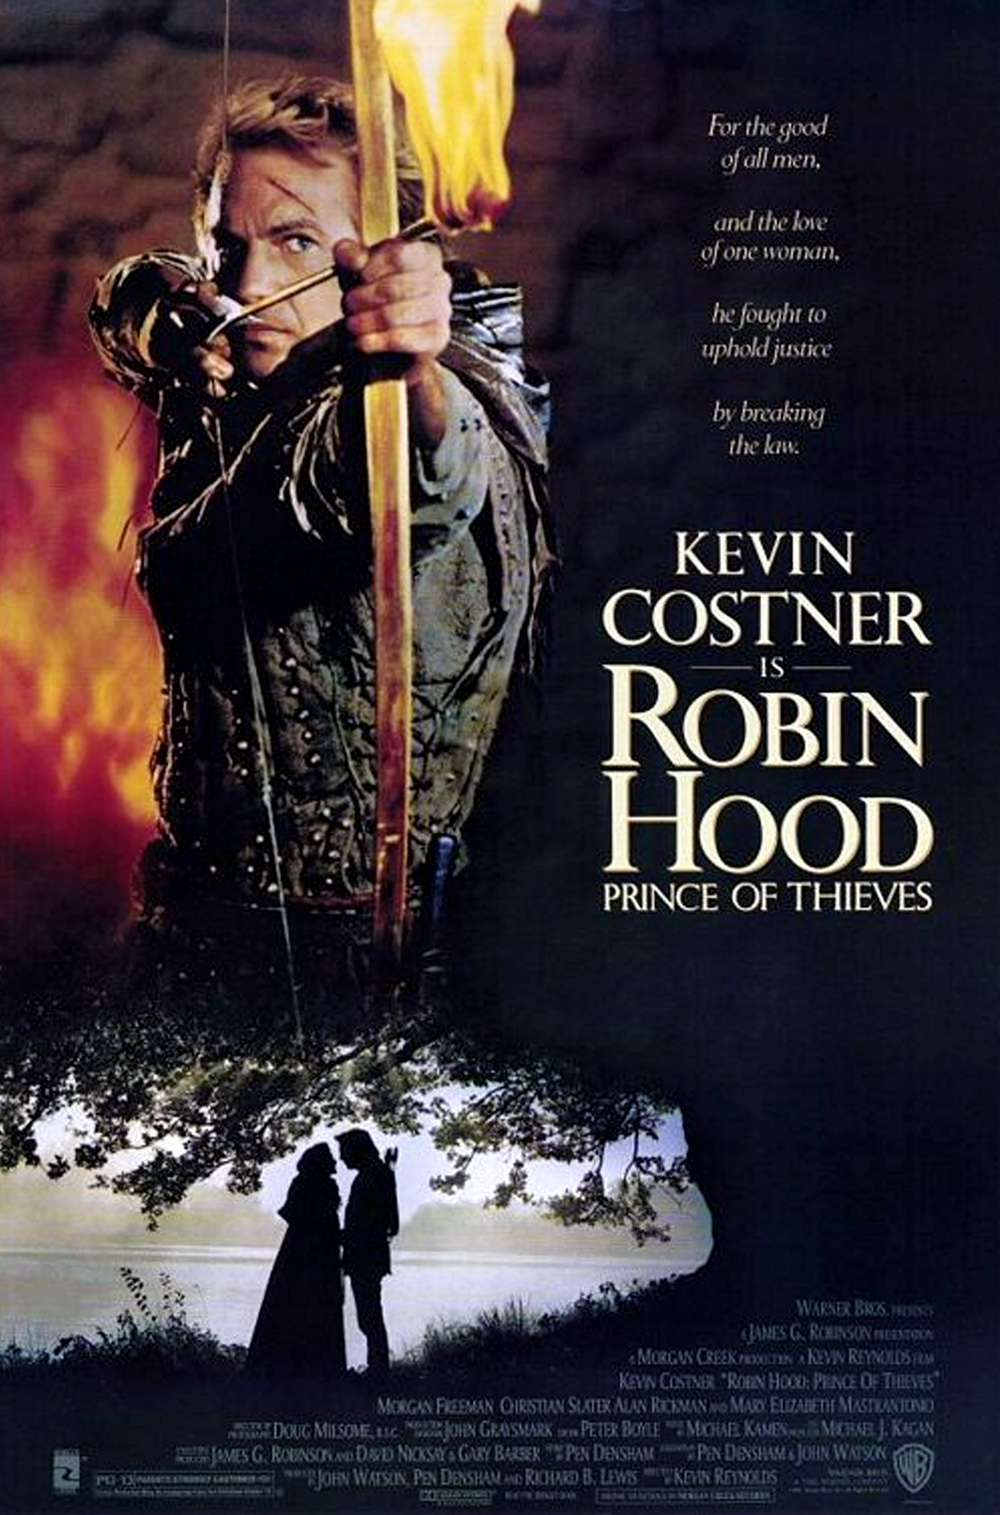 Poster for Robin Hood: Prince of Thieves (1991)